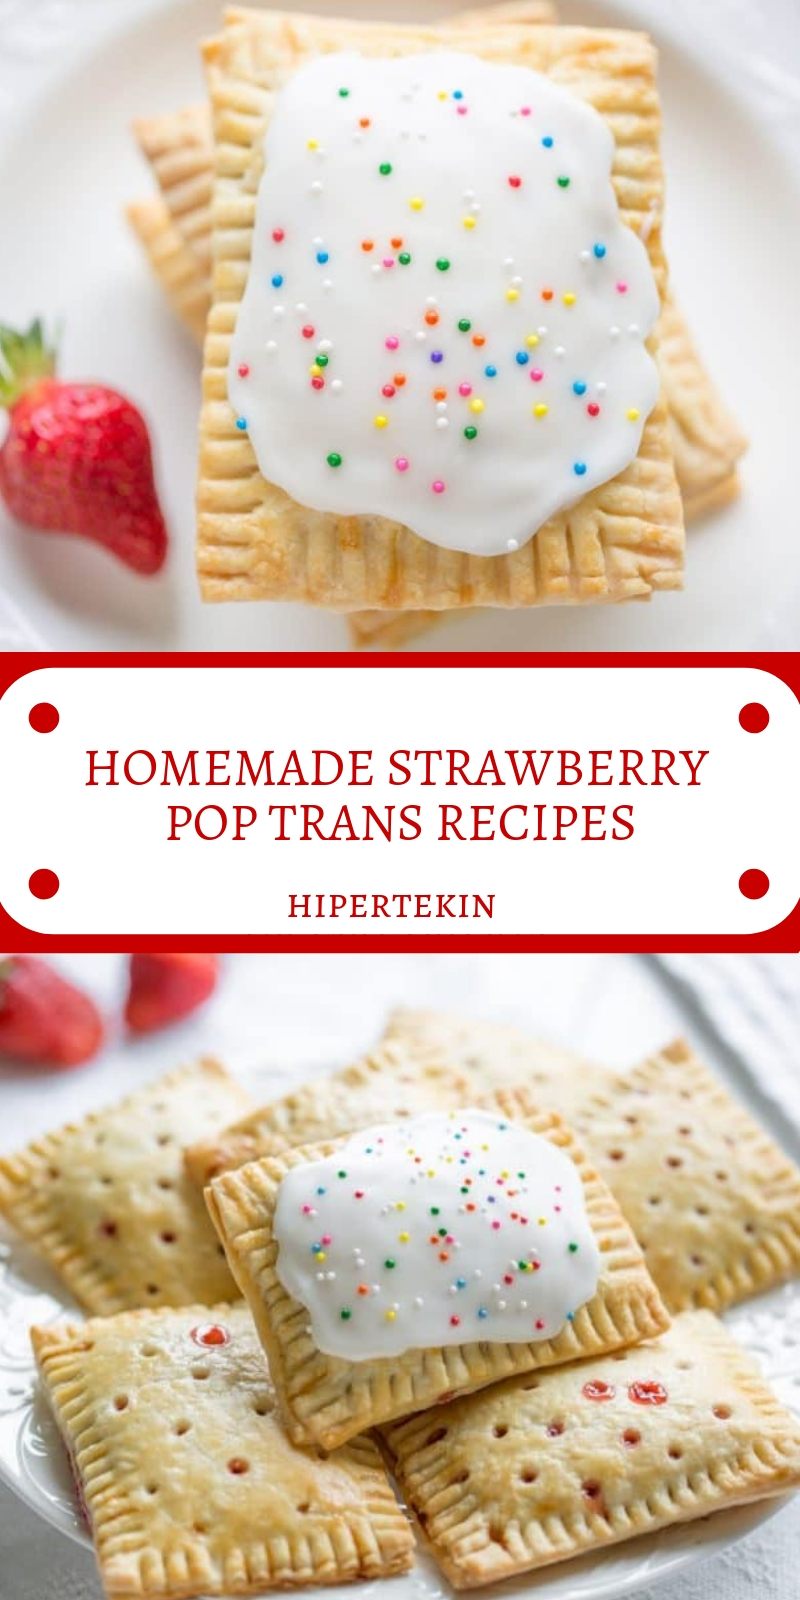 HOMEMADE STRAWBERRY POP TRANS RECIPES